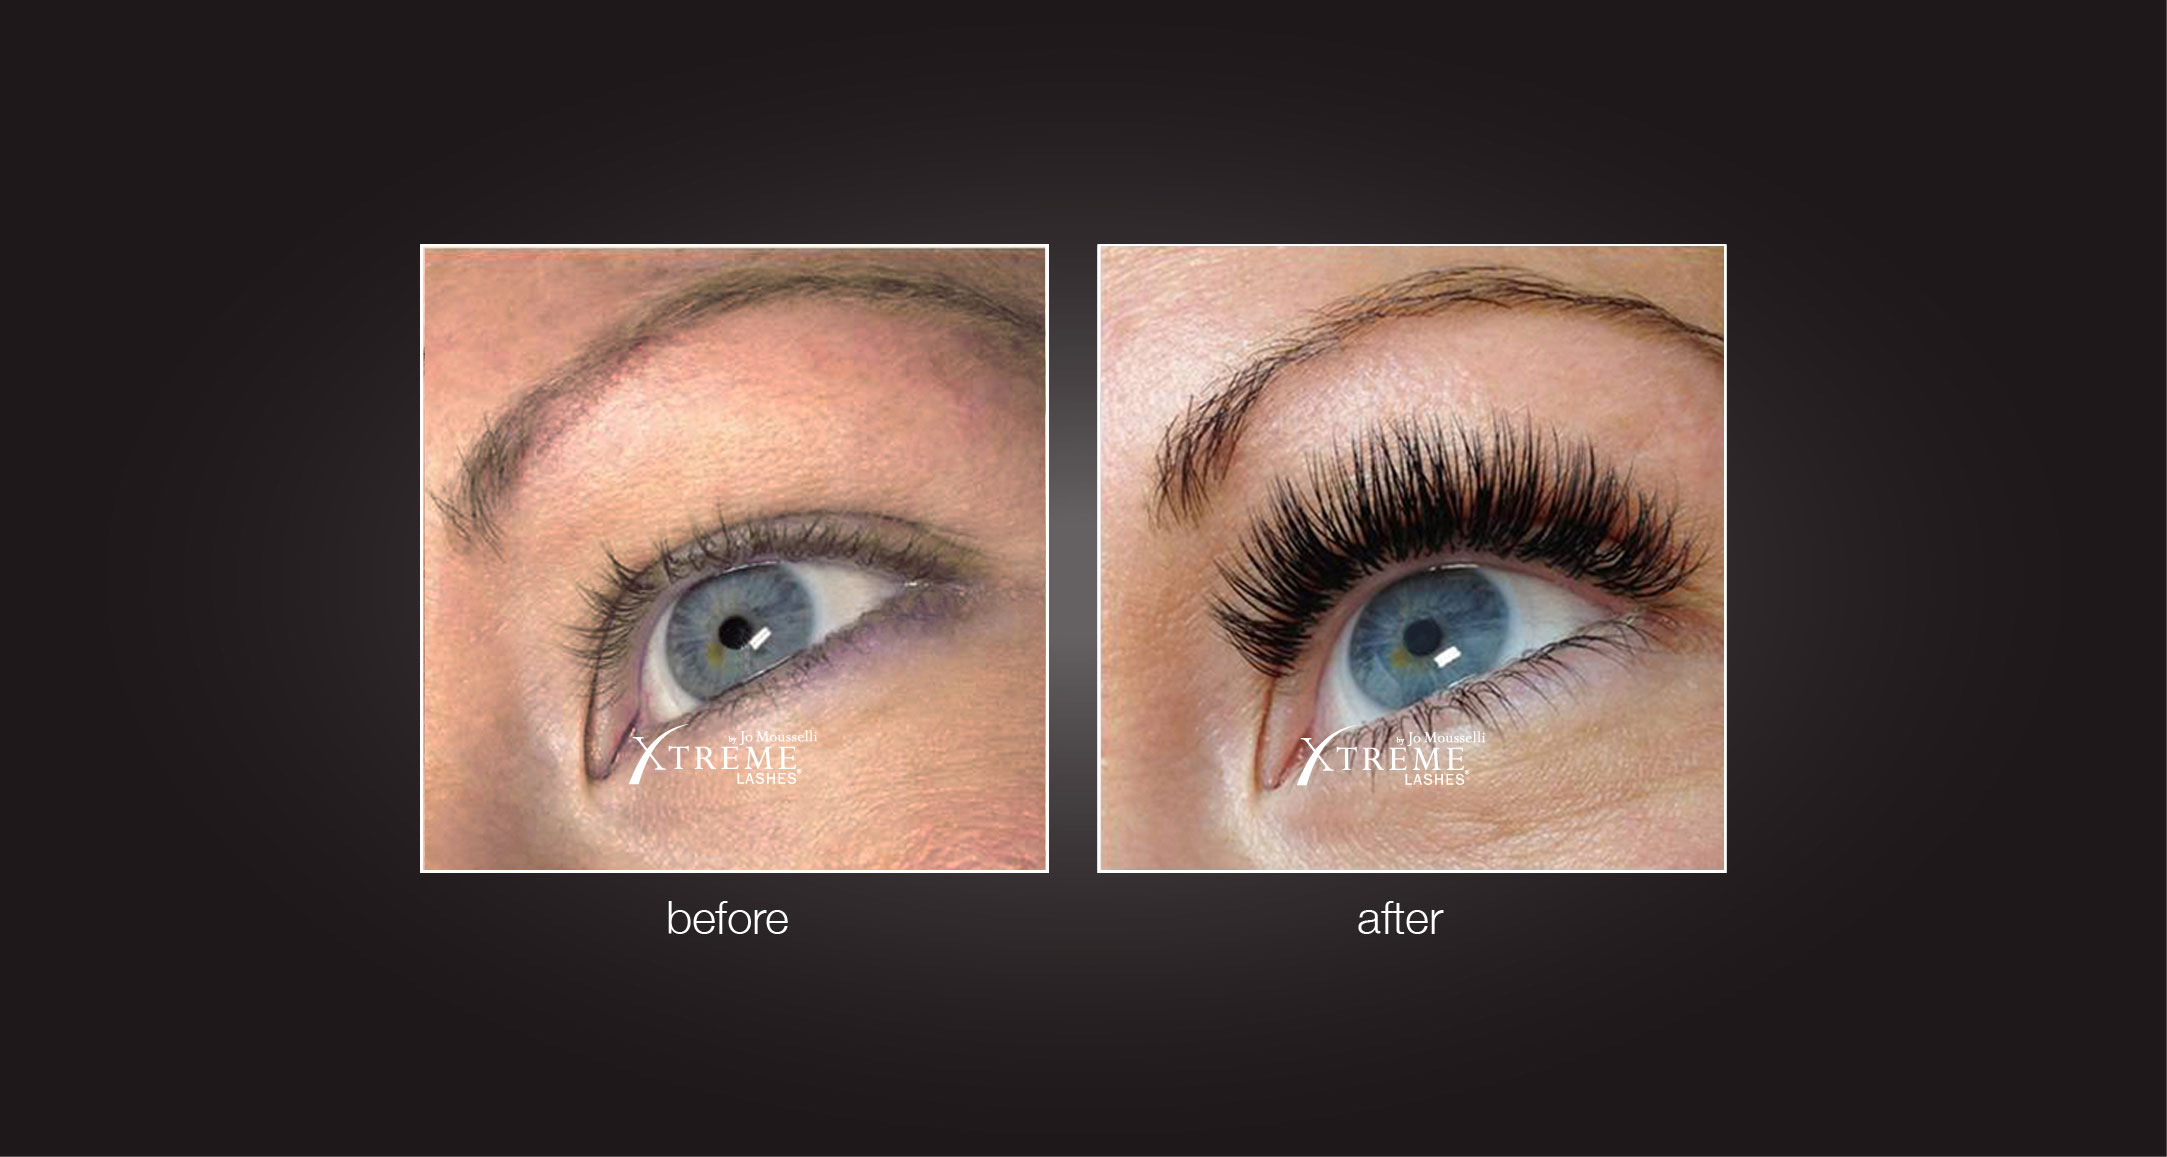 Eyelash Extensions Before After Natural 01